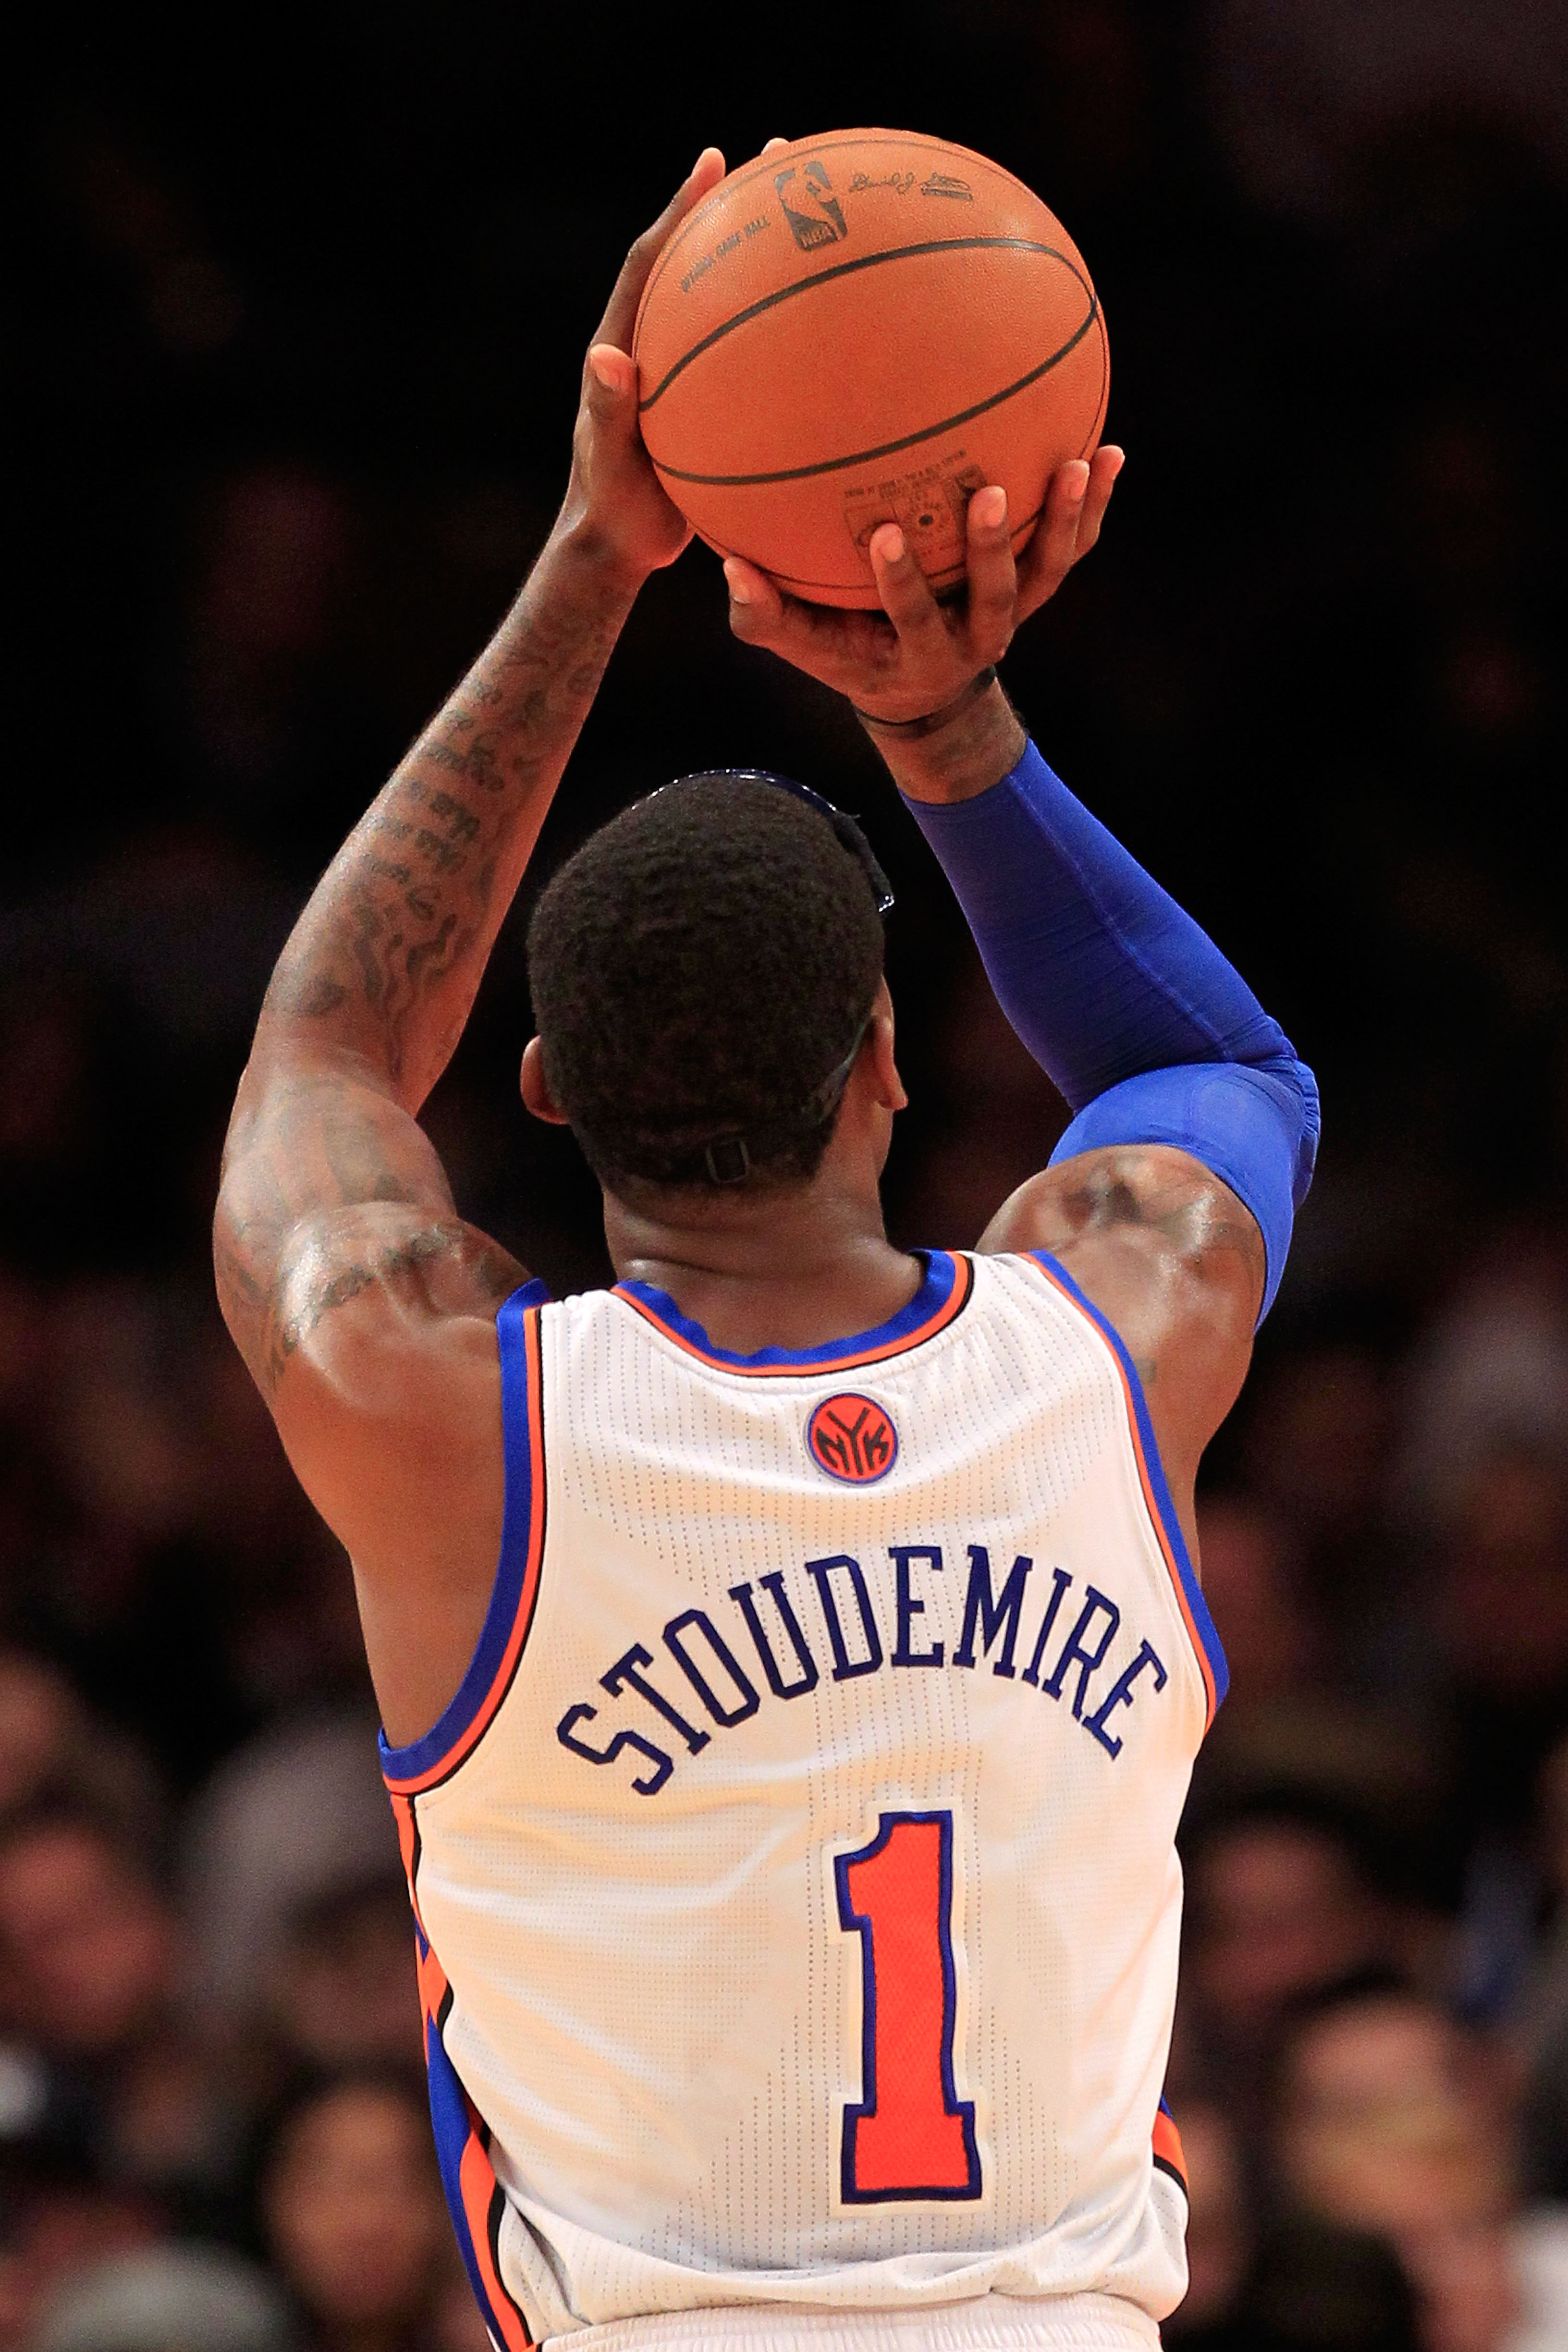 NEW YORK, NY - FEBRUARY 09: Amar'e Stoudemire #1 of the New York Knicks shoots a free throw against the Los Angeles Clippers at Madison Square Garden on February 9, 2011 in New York City. NOTE TO USER: User expressly acknowledges and agrees that, by downl